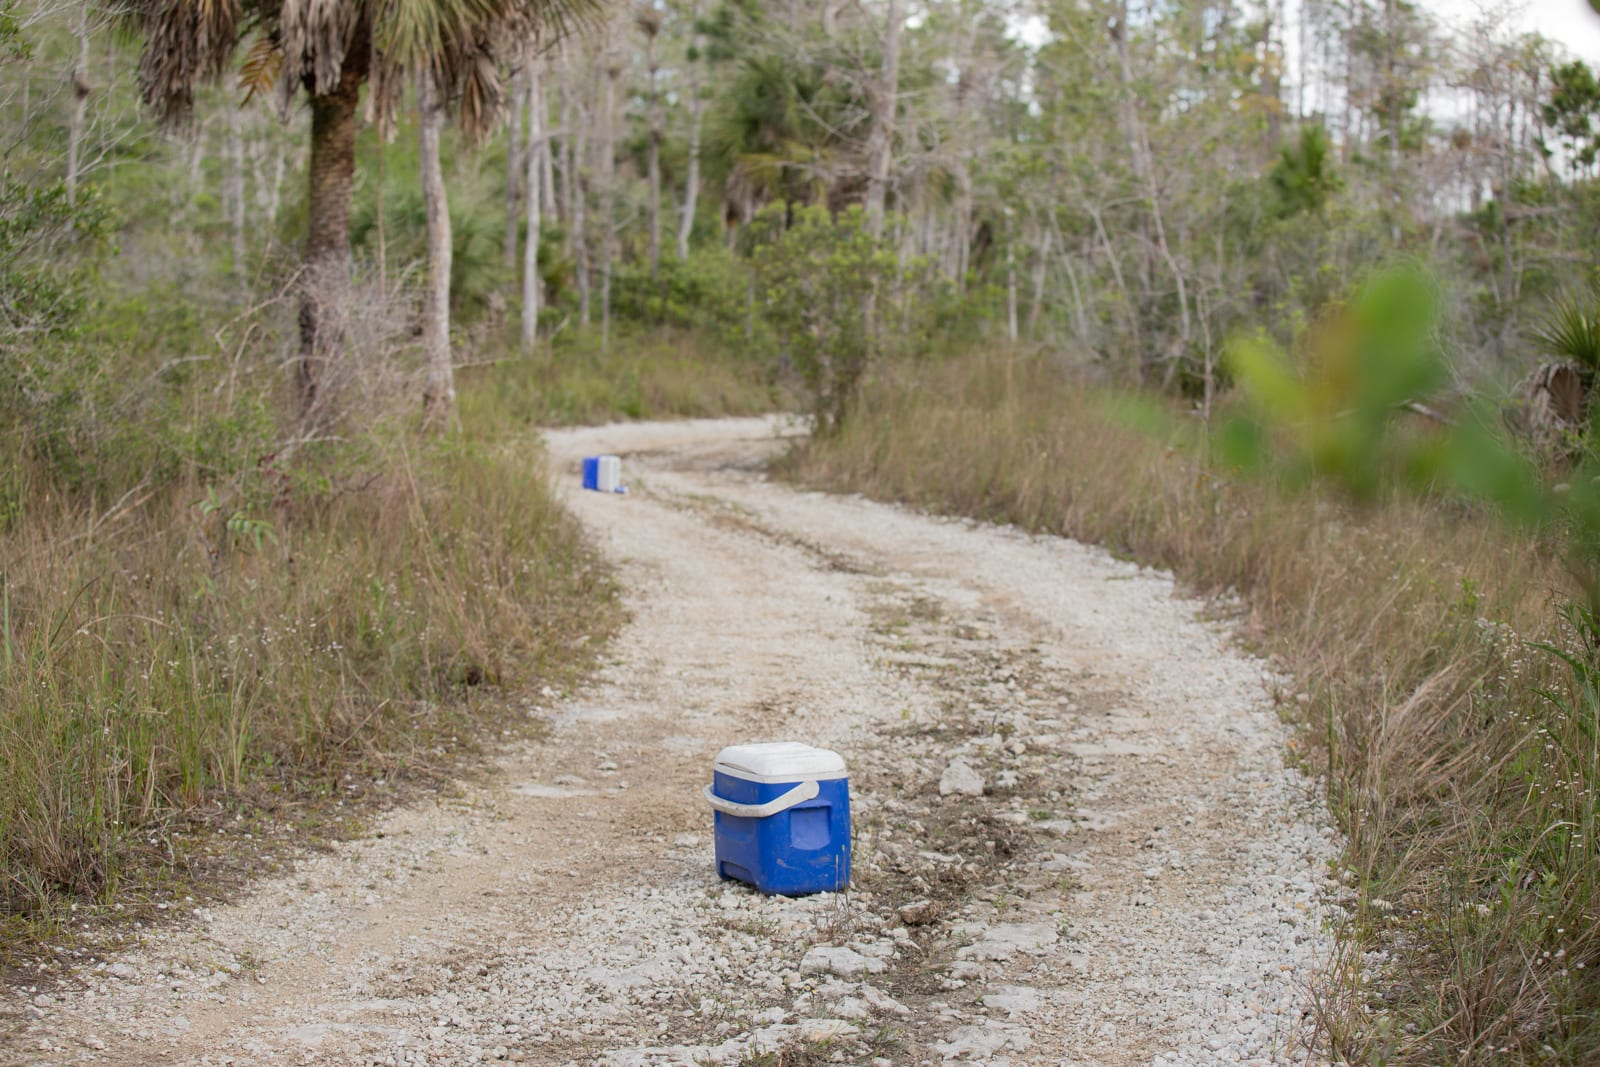 Two abandoned coolers on an Everglades trail